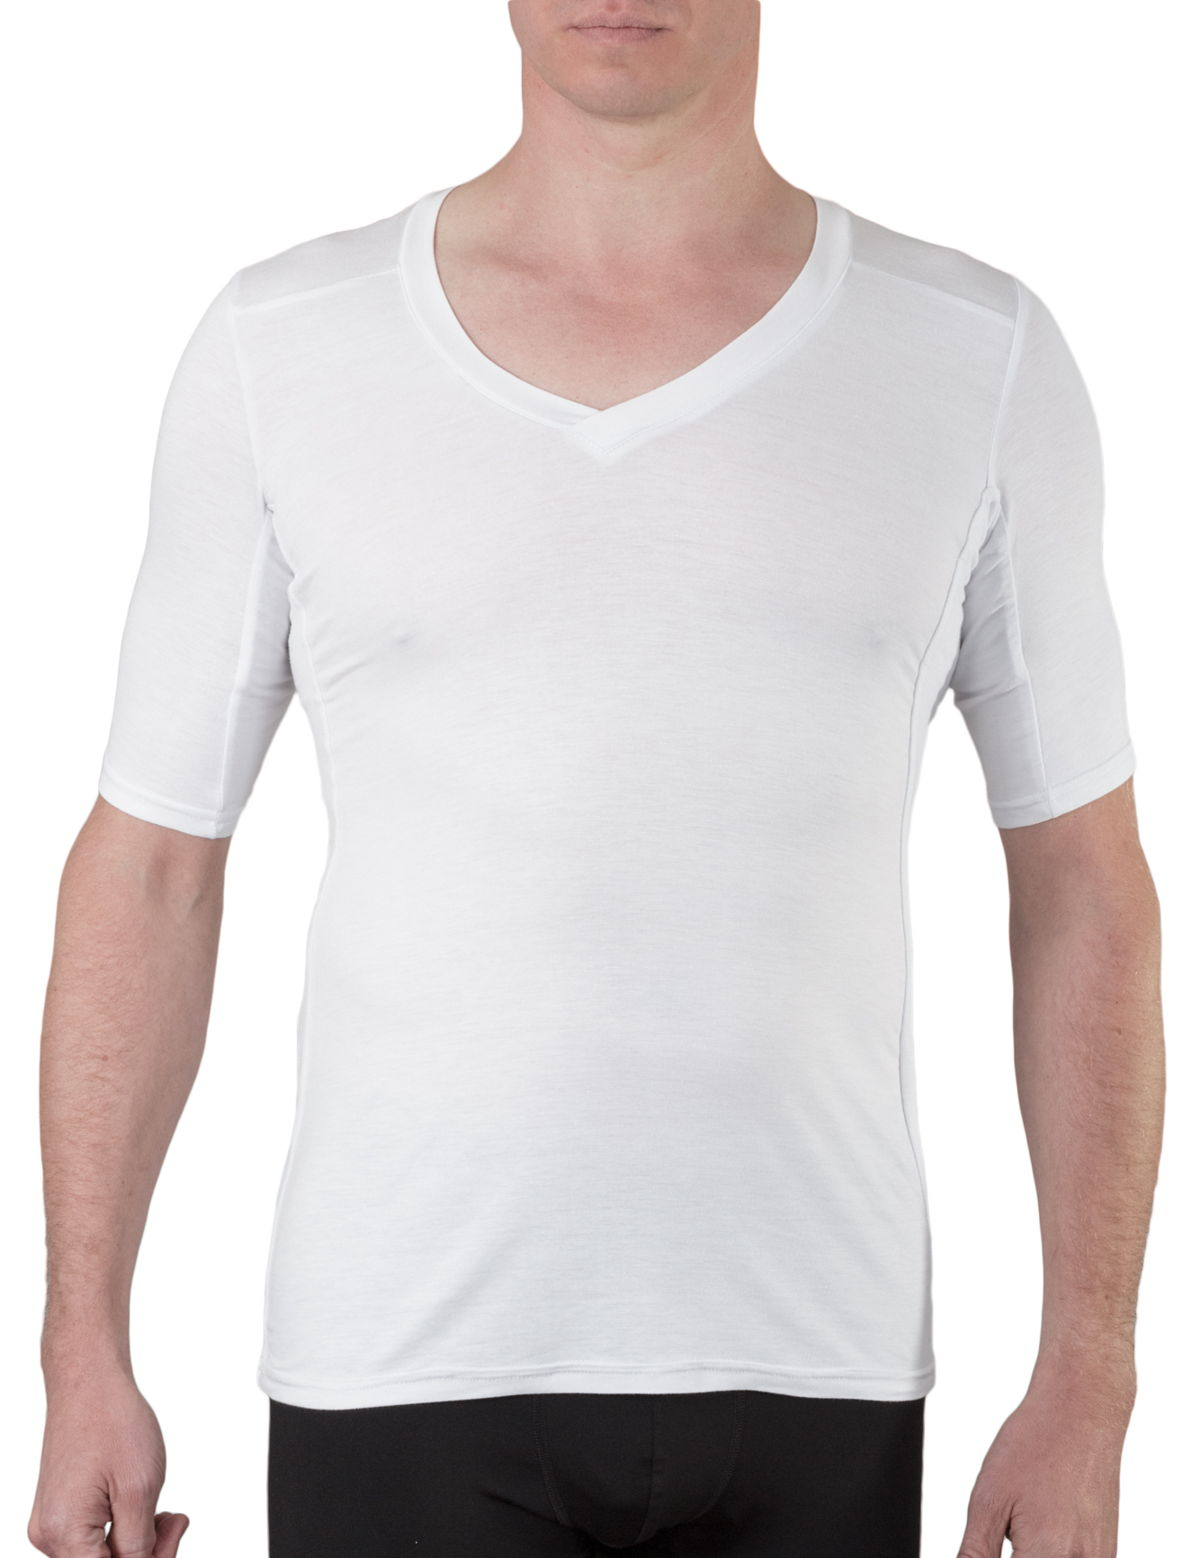 Oxford sweat protect mens bamboo undershirt